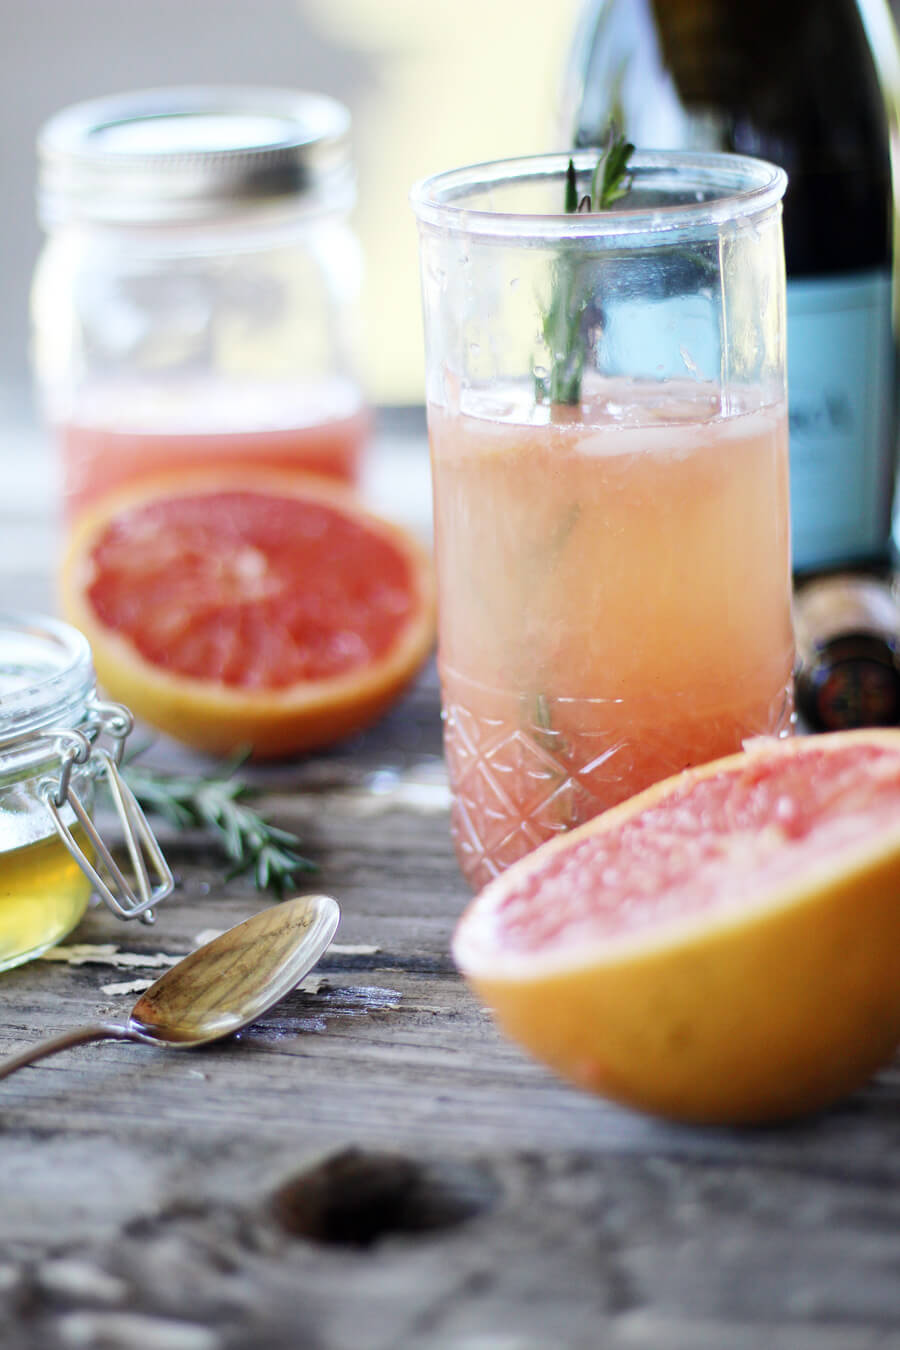 A grapefruit and prosecco cocktail next to a bottle, fresh sliced grapefruit and rosemary